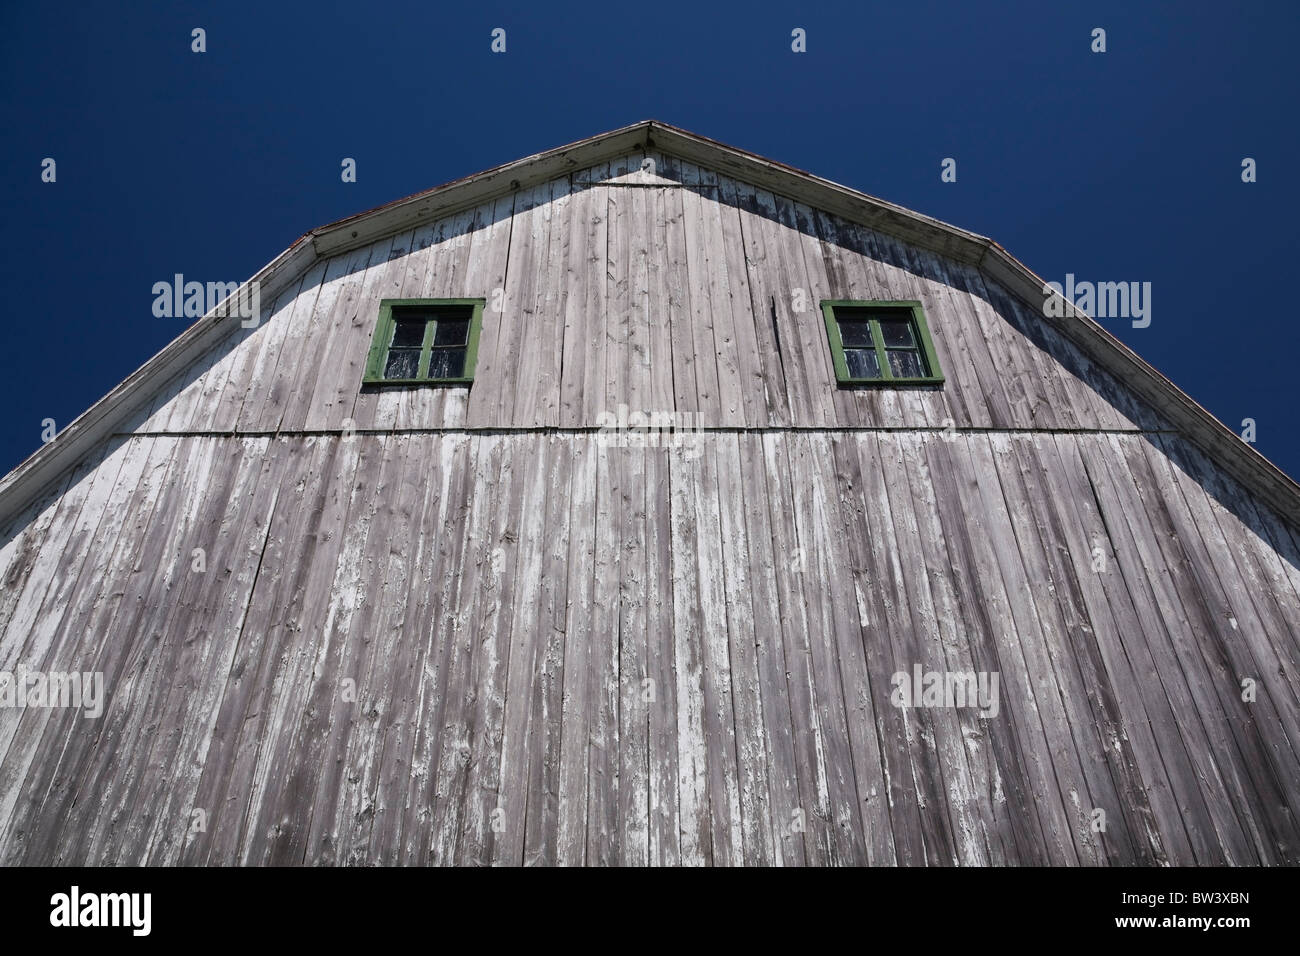 Partial view of the side of an old Mansard style wooden barn, Laval, Quebec, Canada - Stock Image